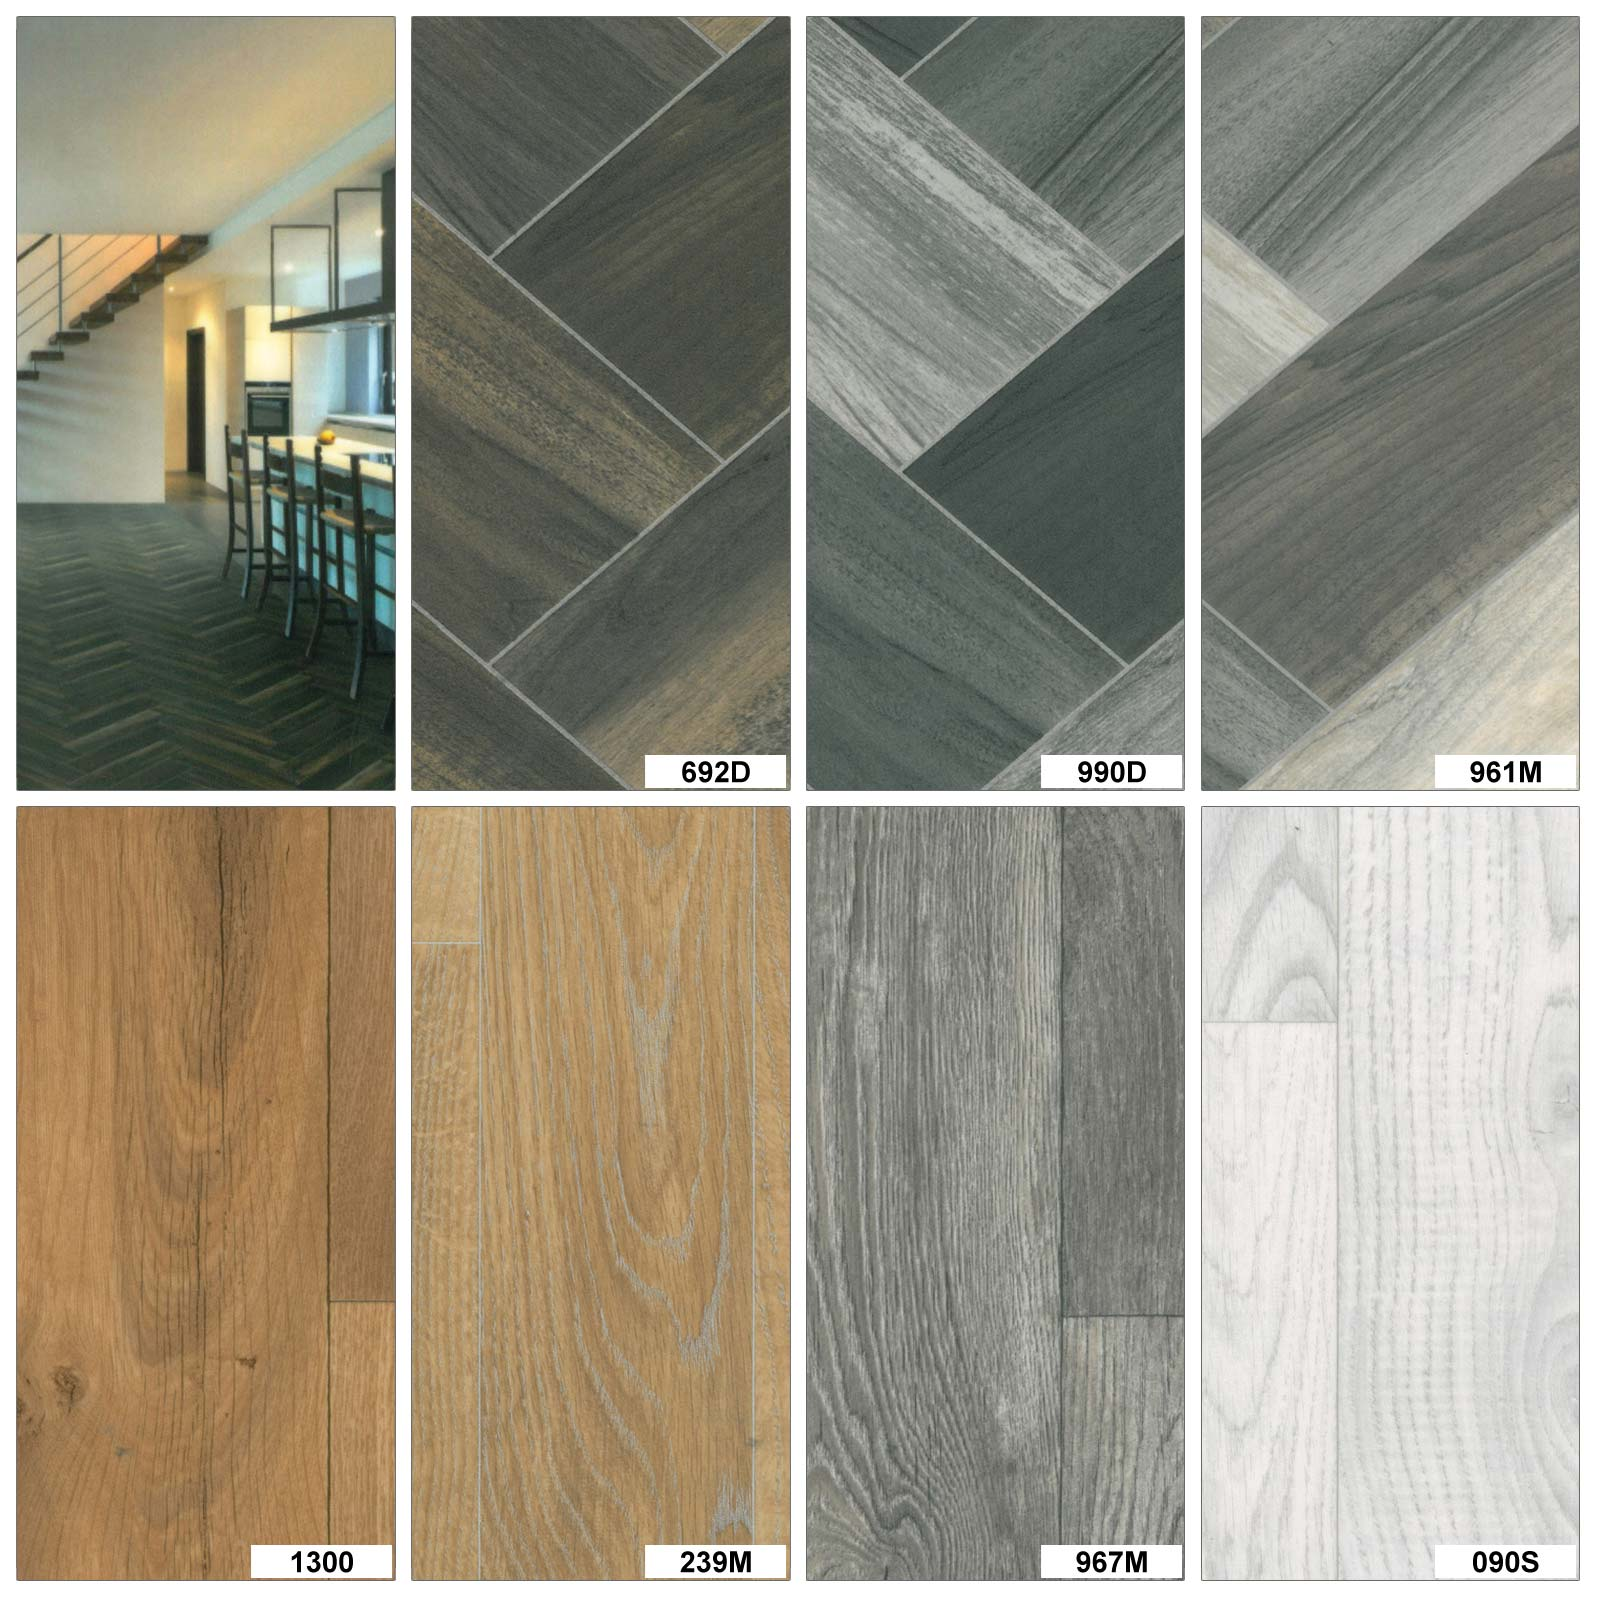 Details about High Quality Wood Effect Anti Slip Lino Home Kitchen Bedroom  Vinyl Flooring